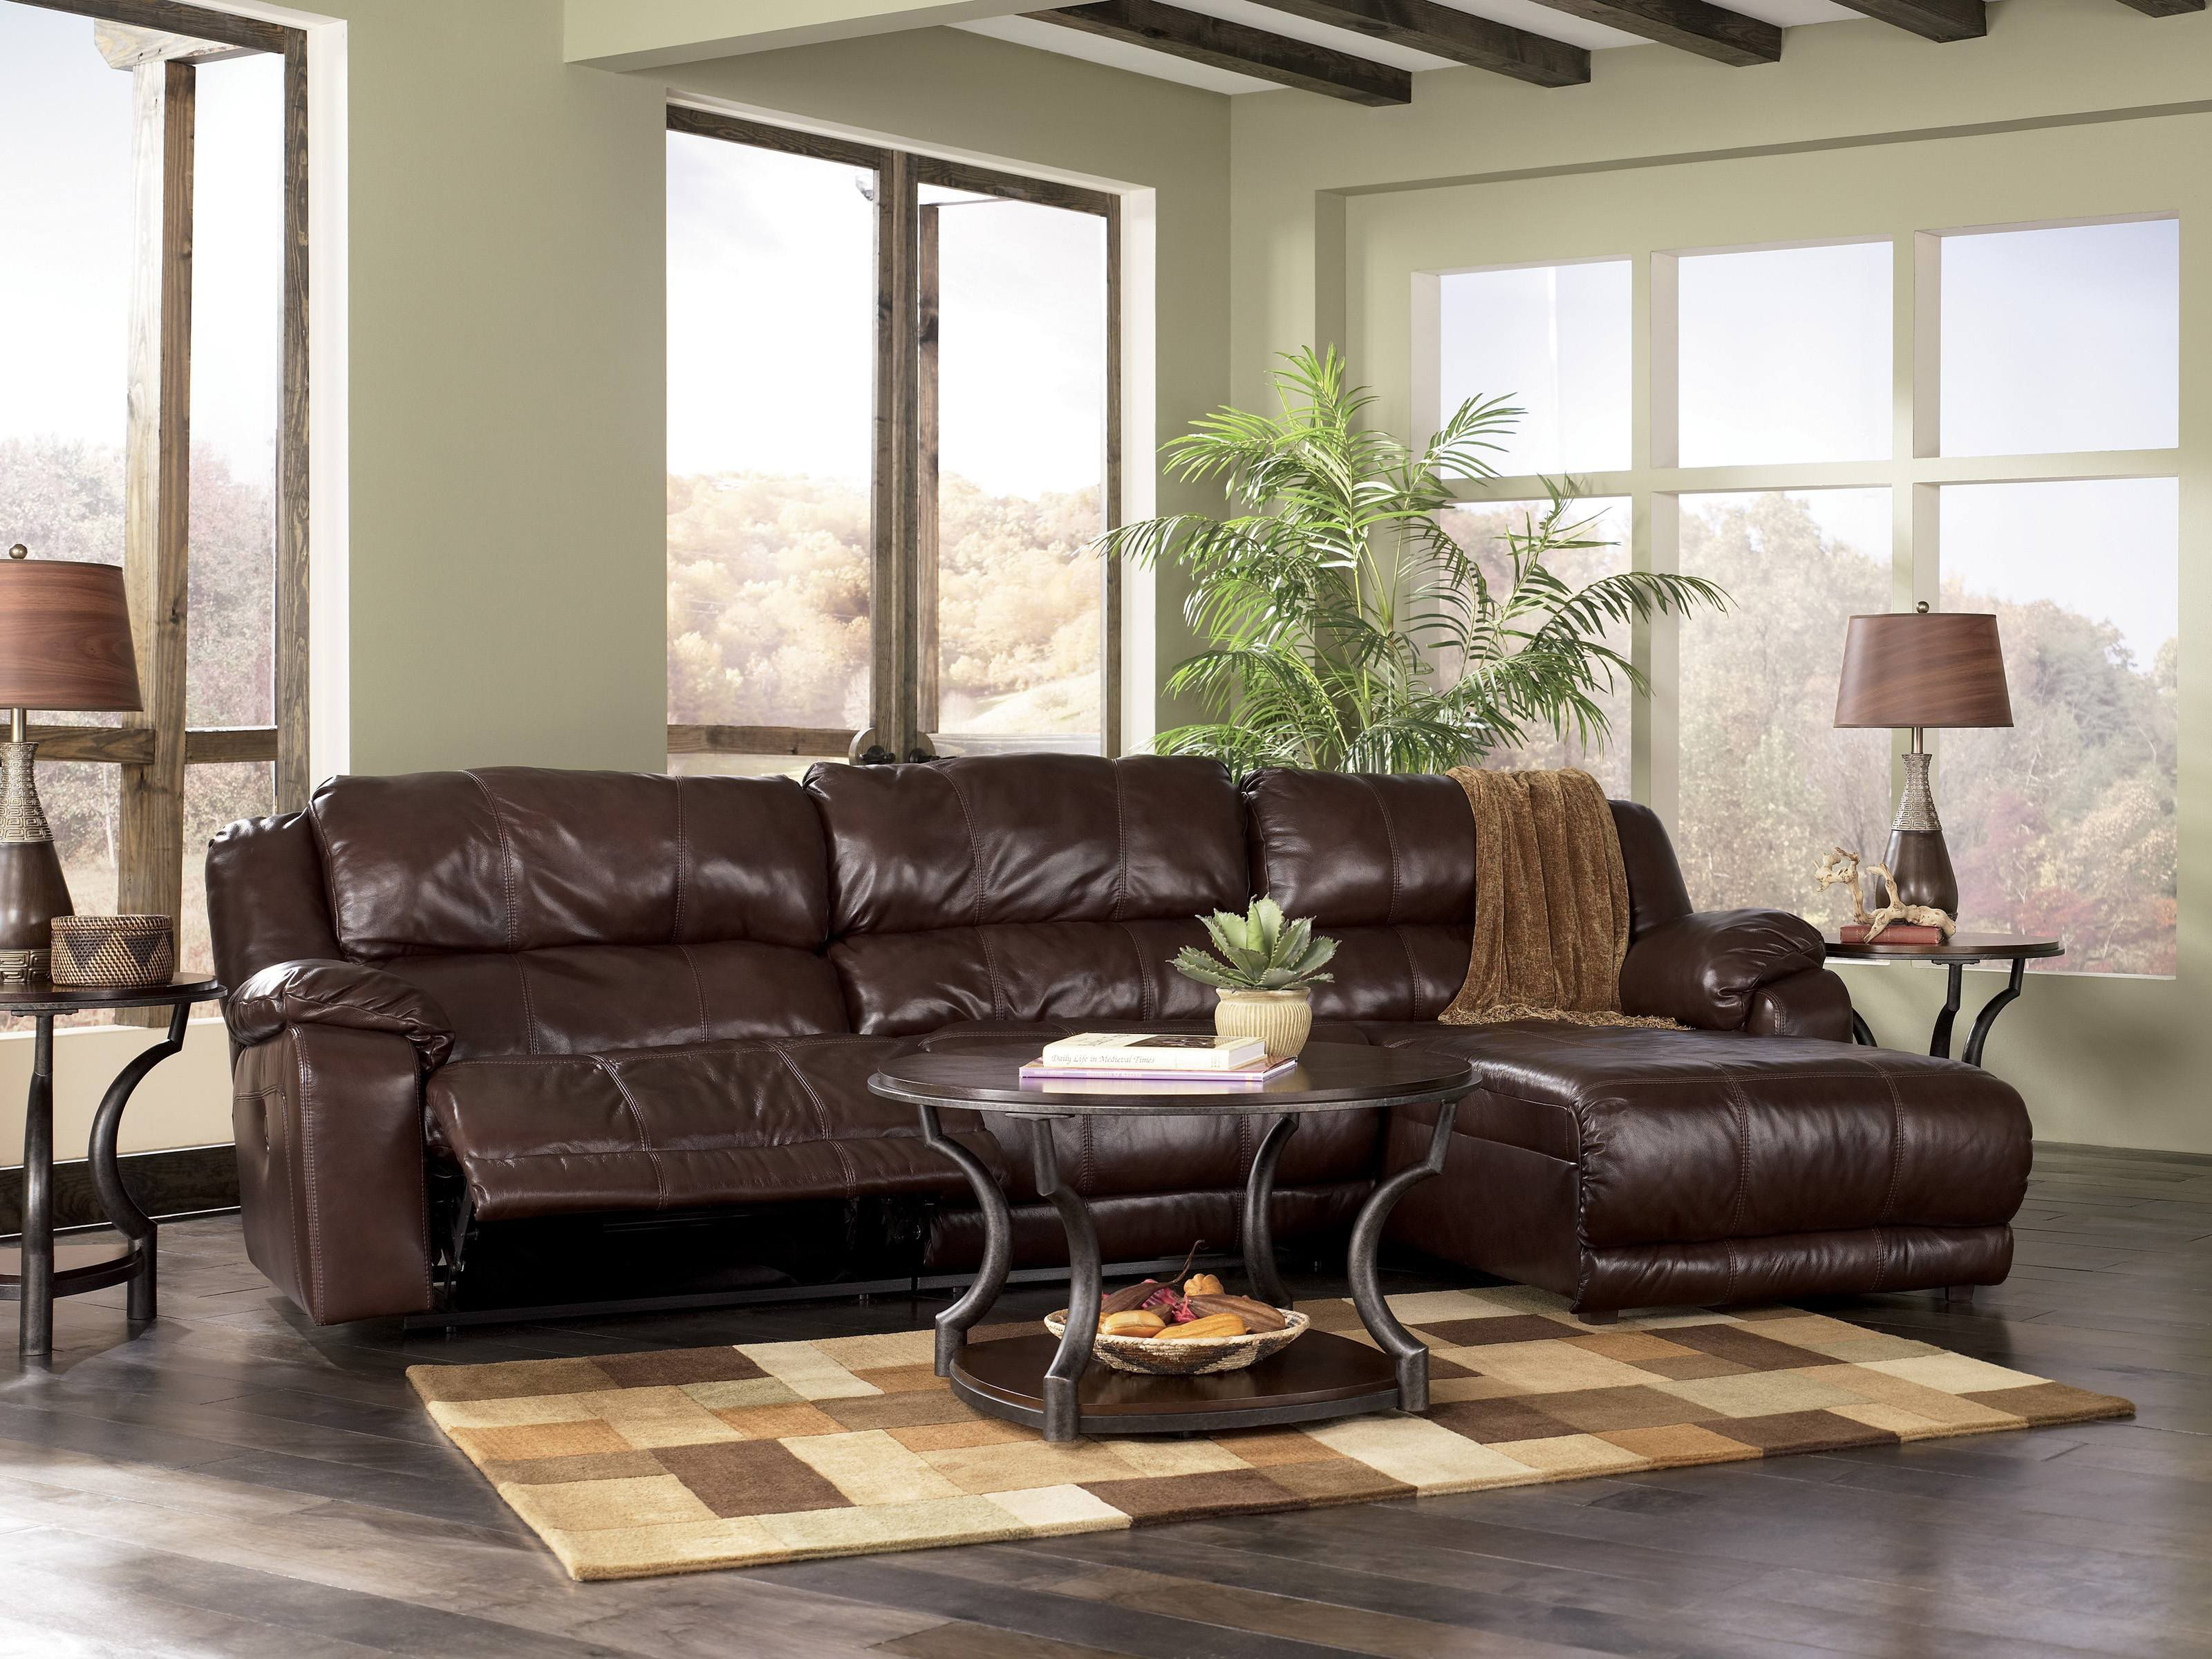 Stanton 3 piece living room set brown - Sectional Sofas With Recliners Johnson Leather Sofa With Recliner And Chaise Sectional Couches